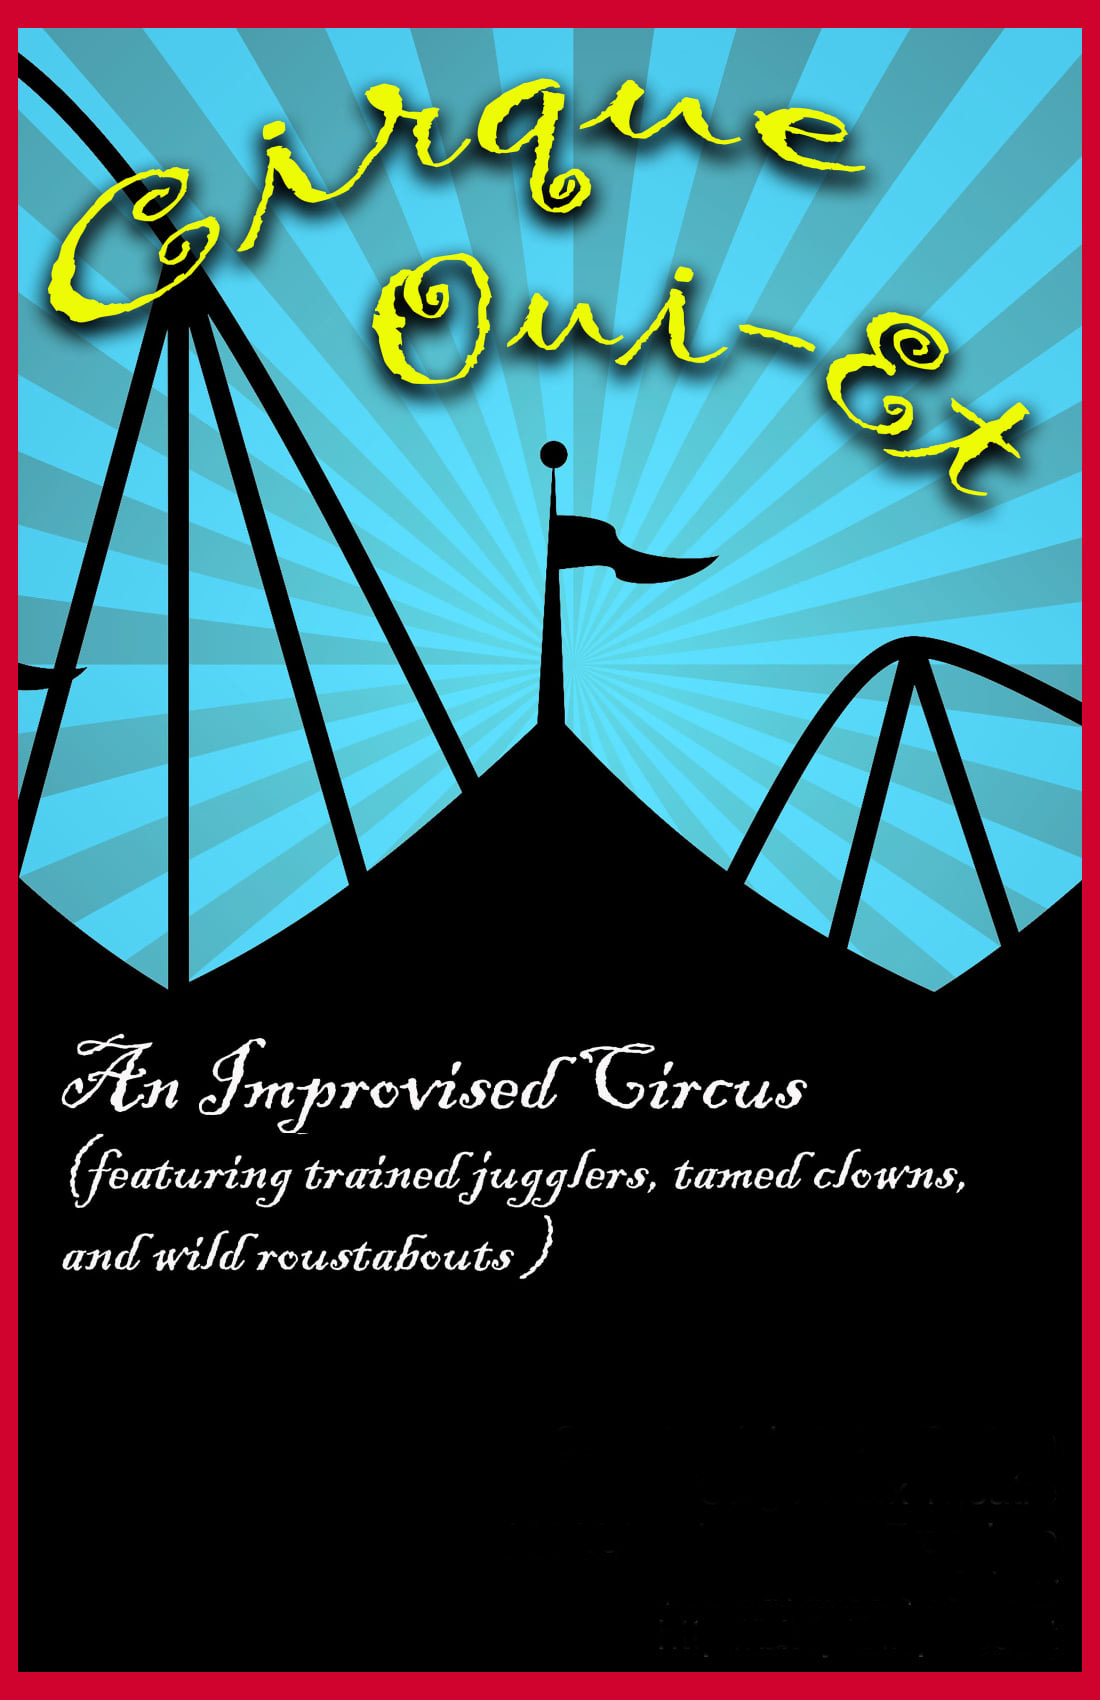 Cirque oui et poster monthly show